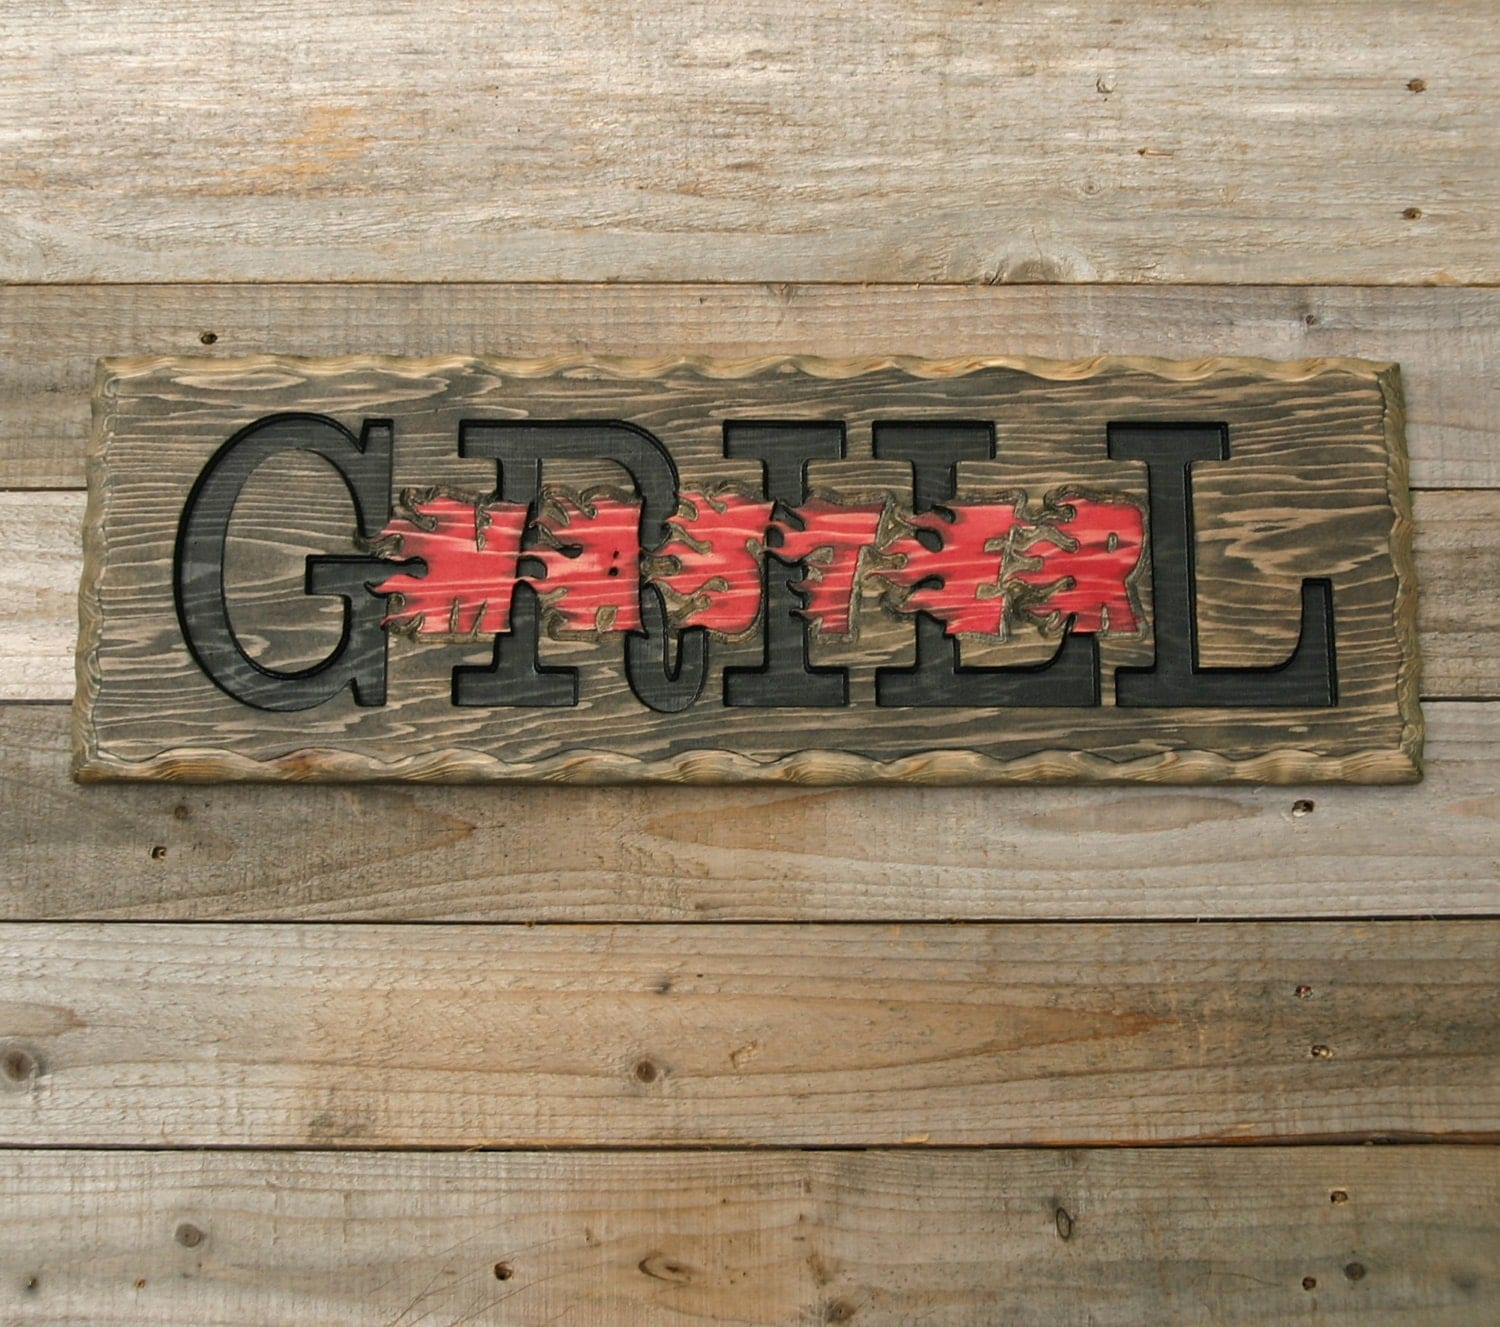 Man Cave Bbq Signs : Bbq grill sign grillmaster wood man cave